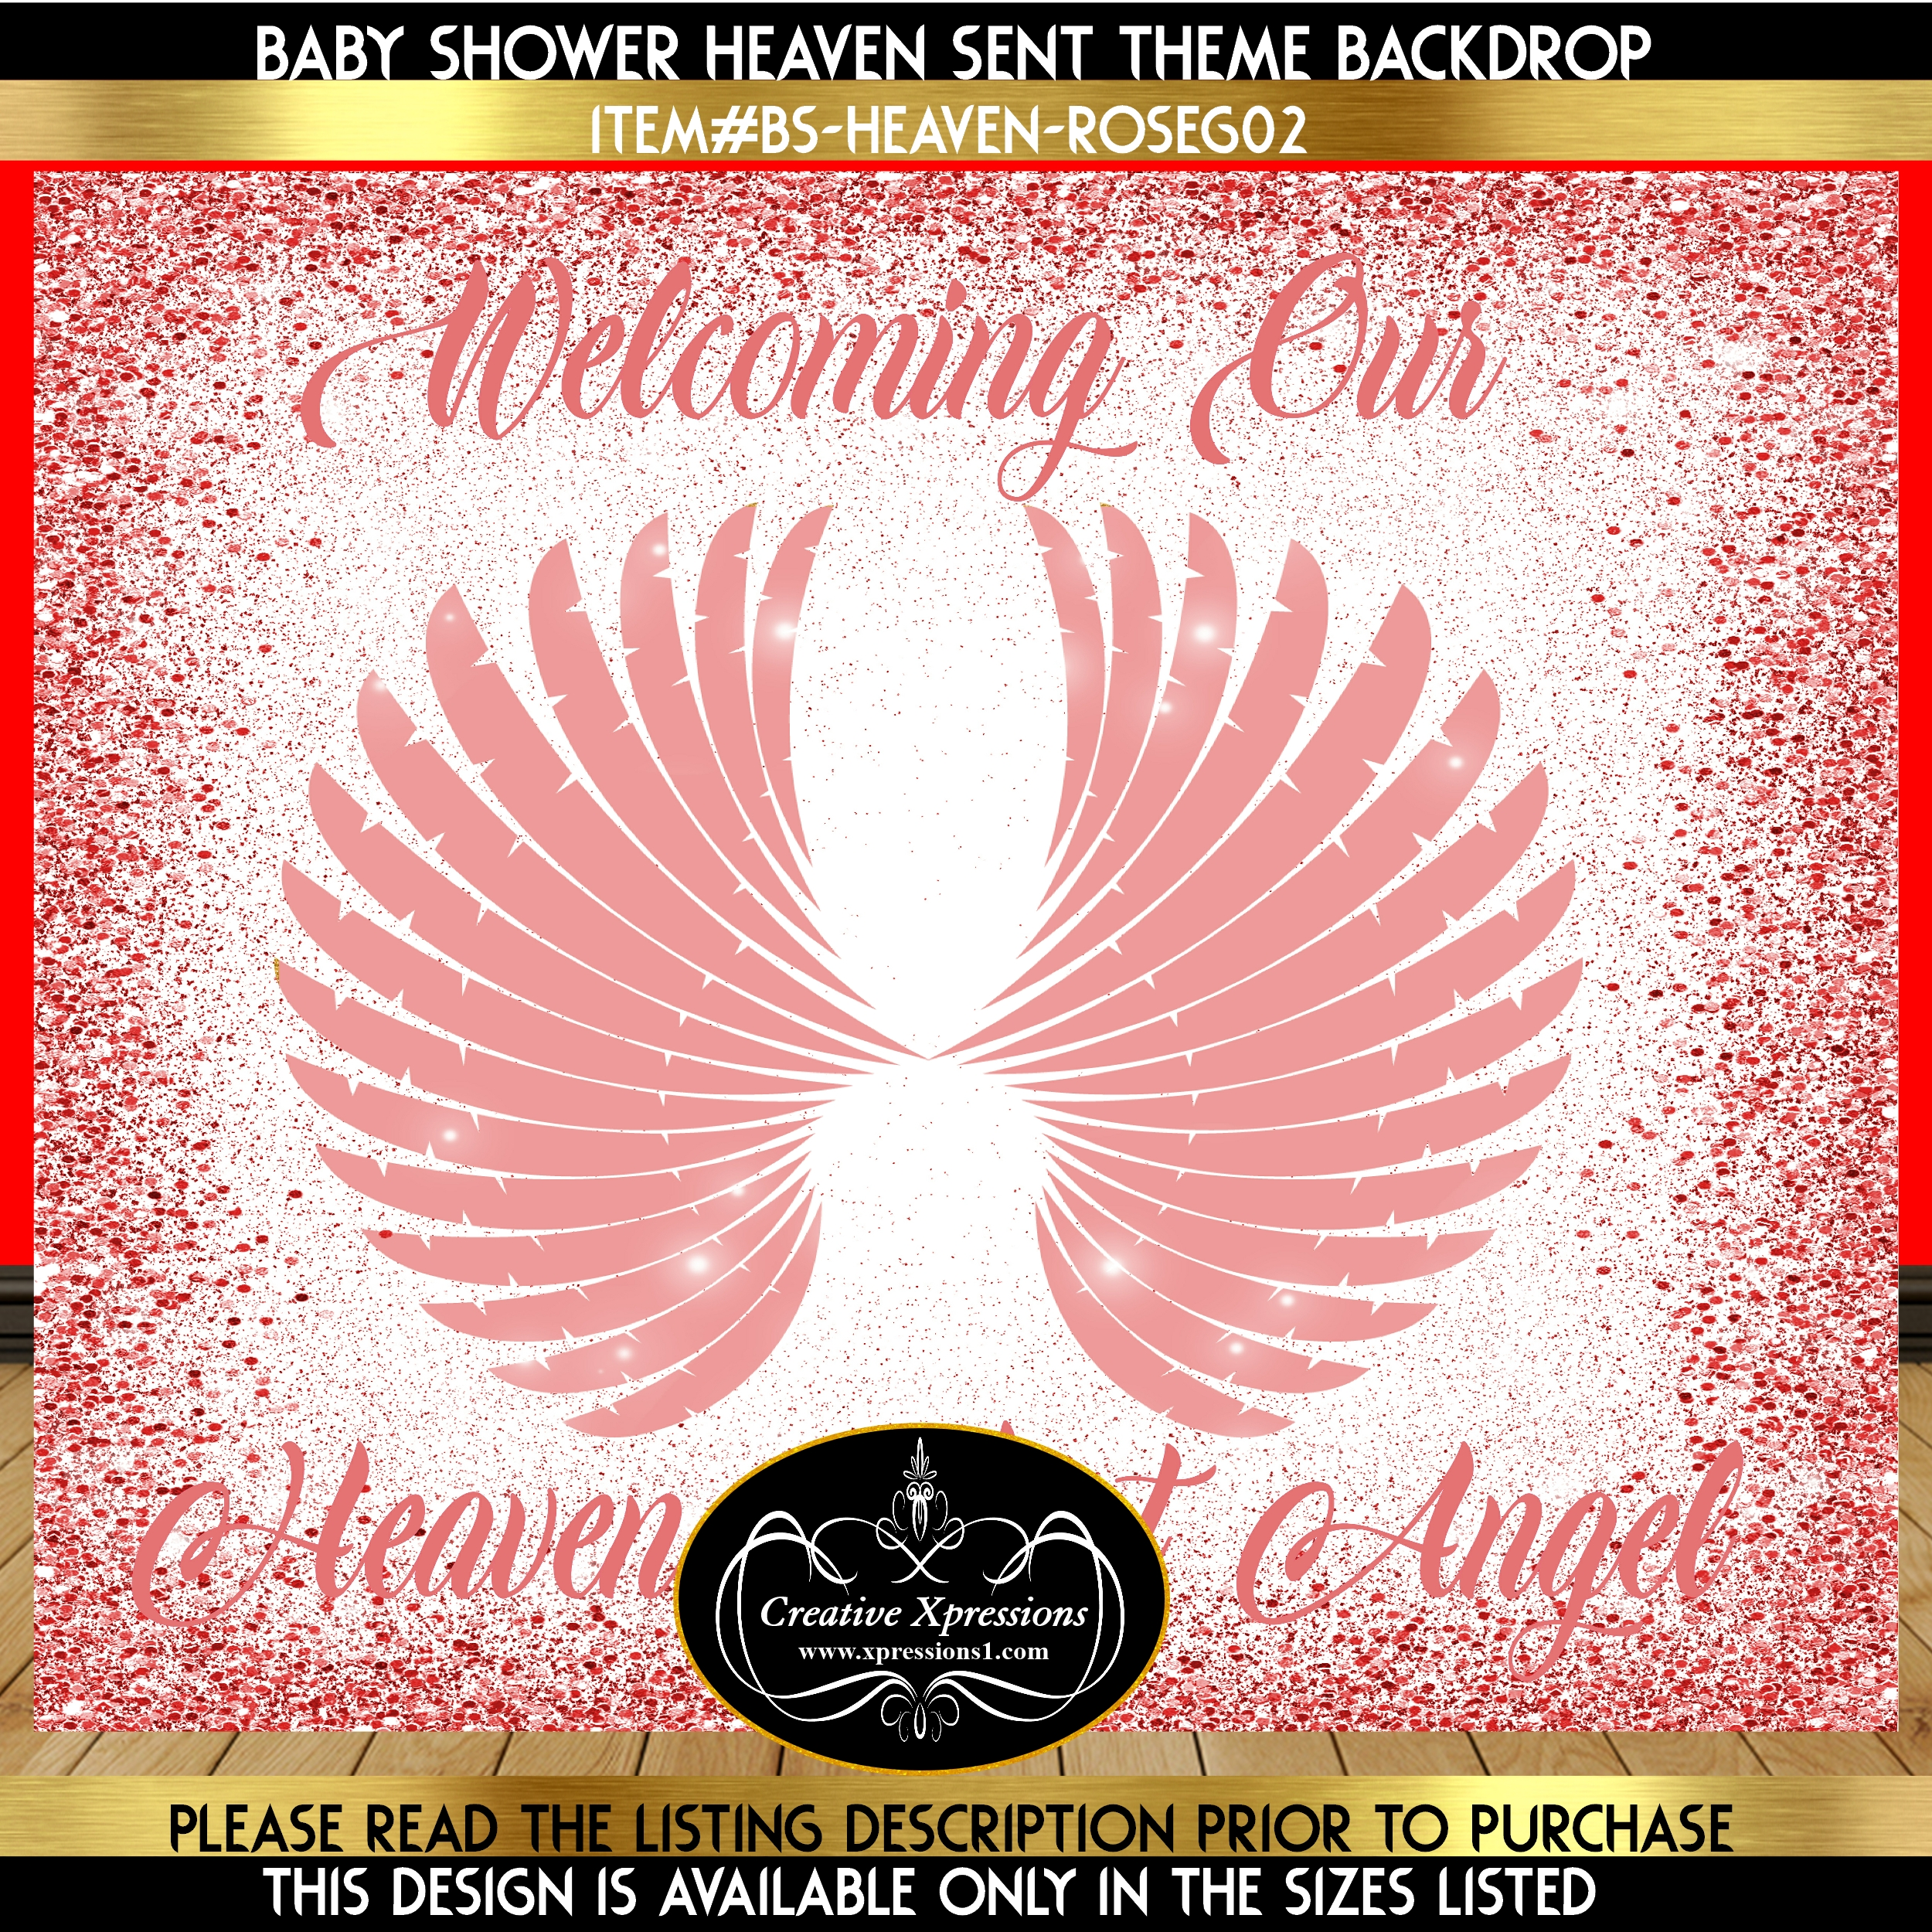 Rose Gold Angel Wings Backdrop